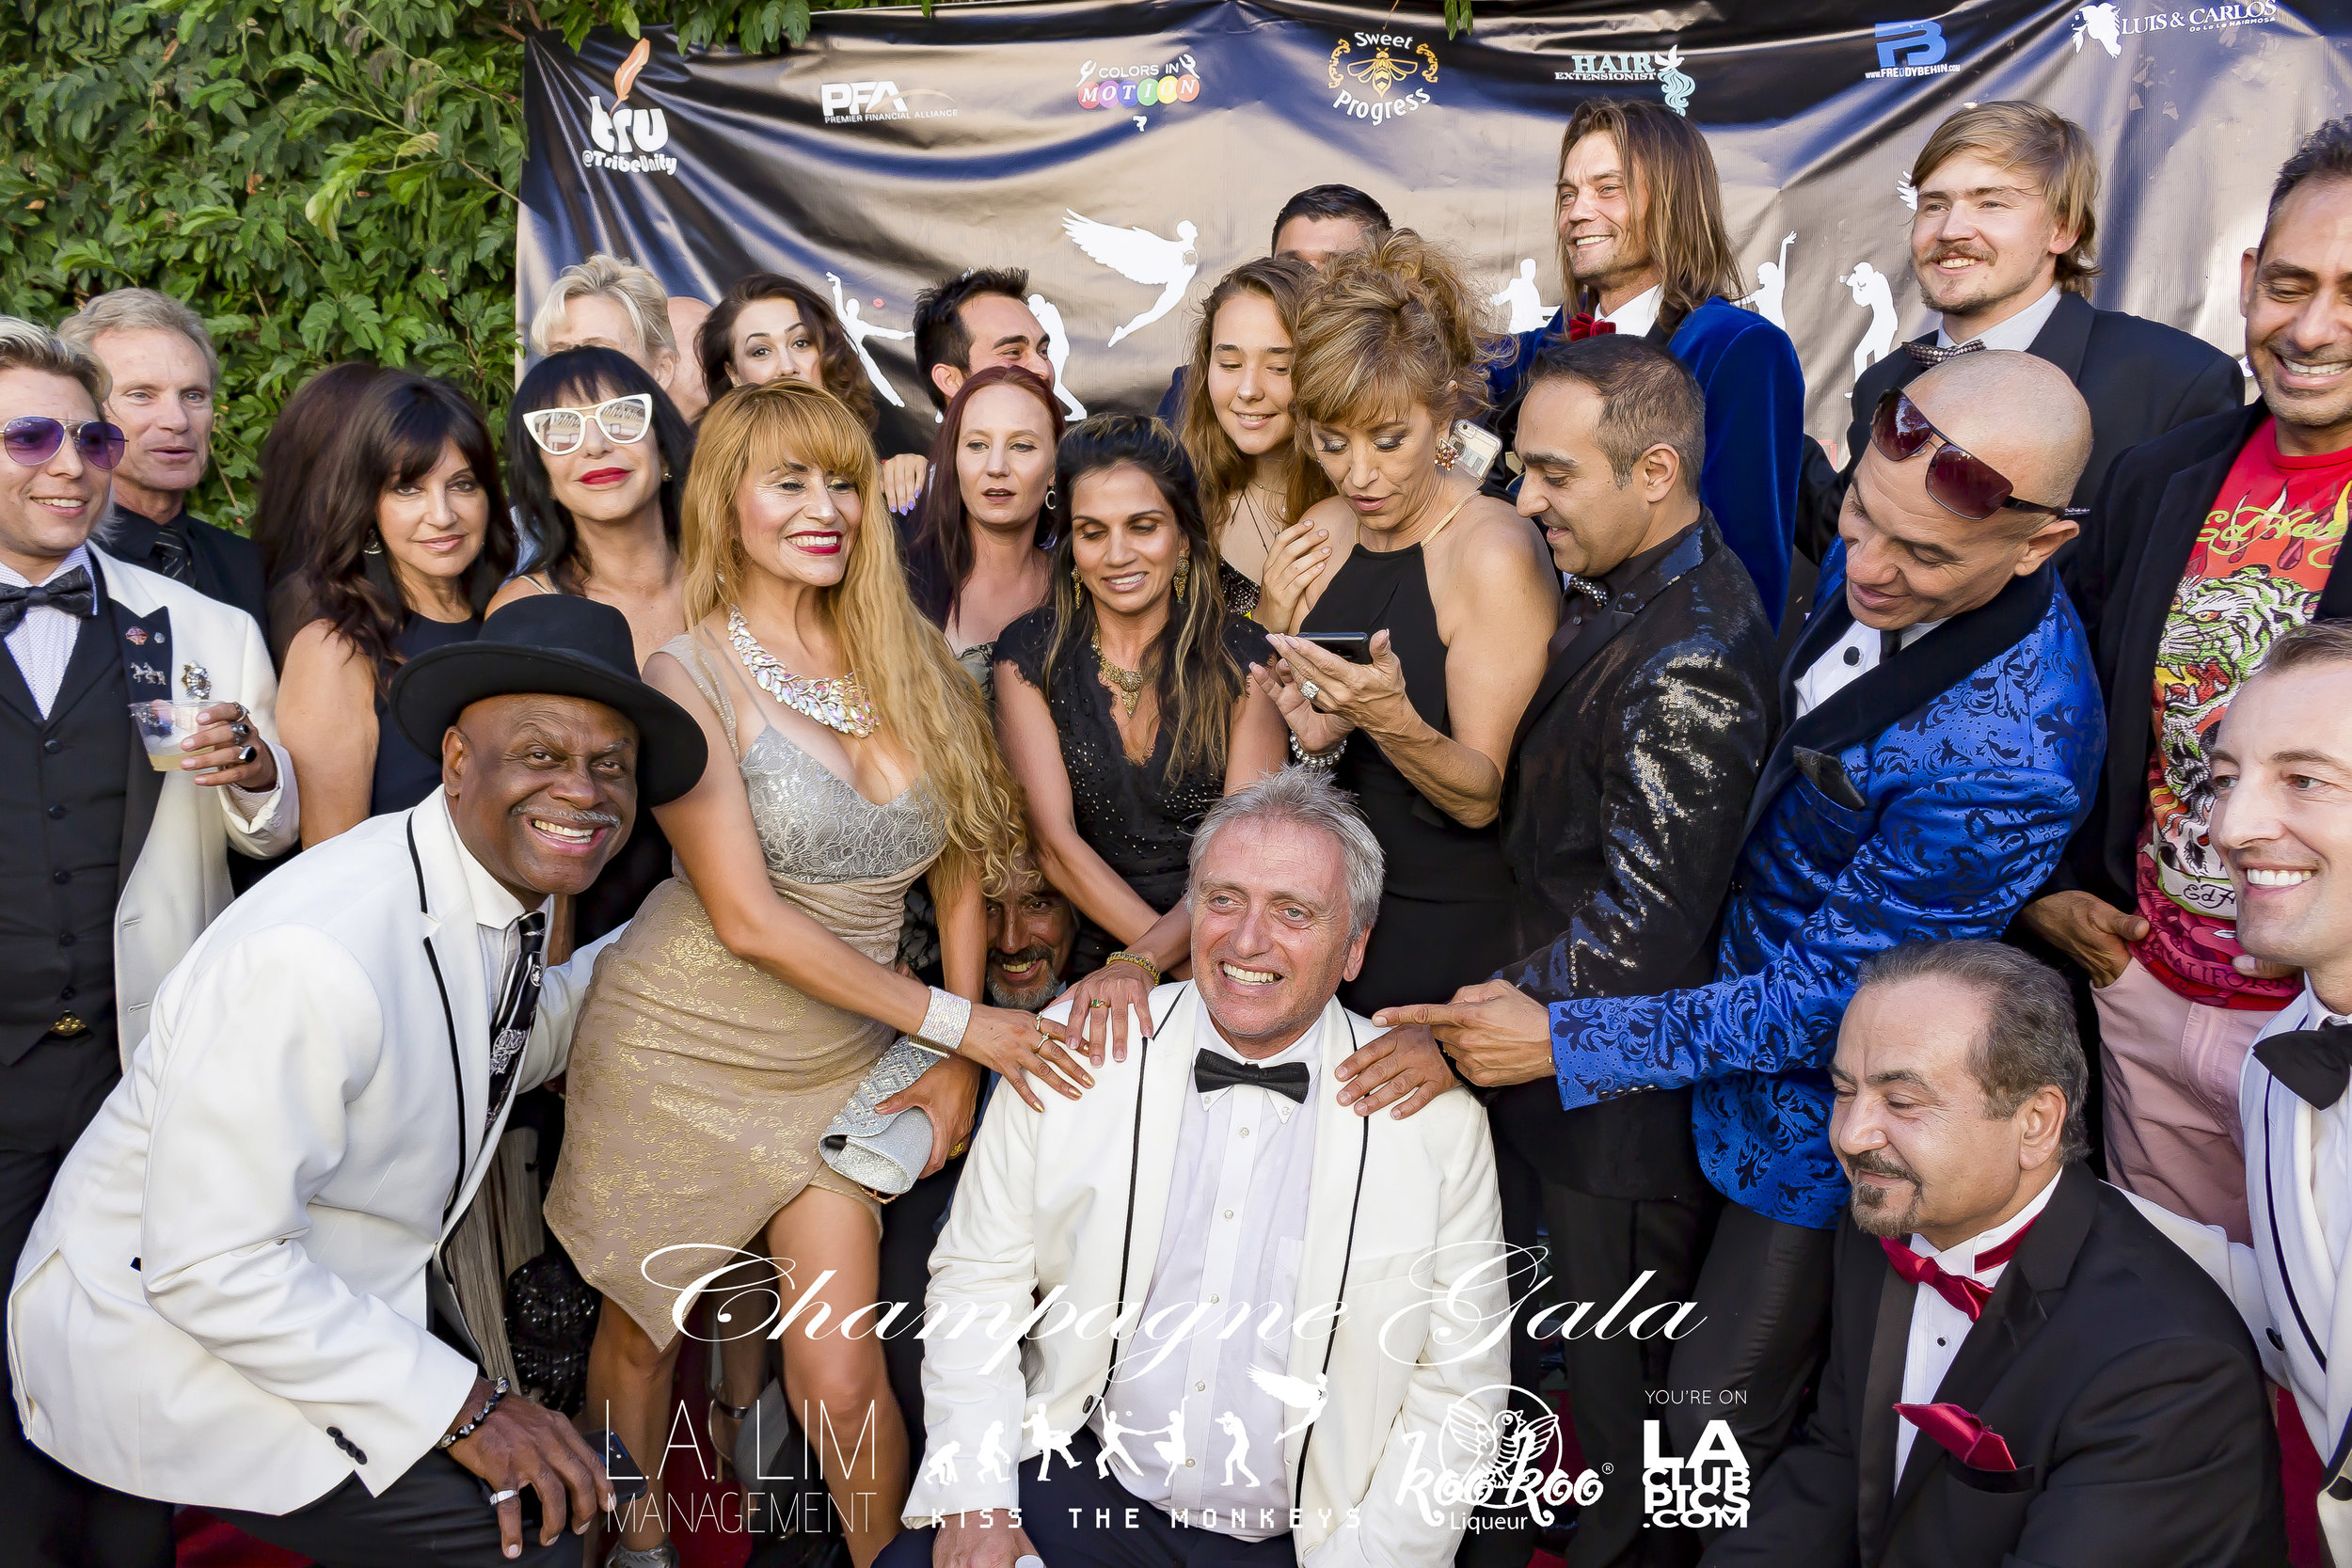 Kiss The Monkeys - Champagne Gala - 07-21-18_44.jpg